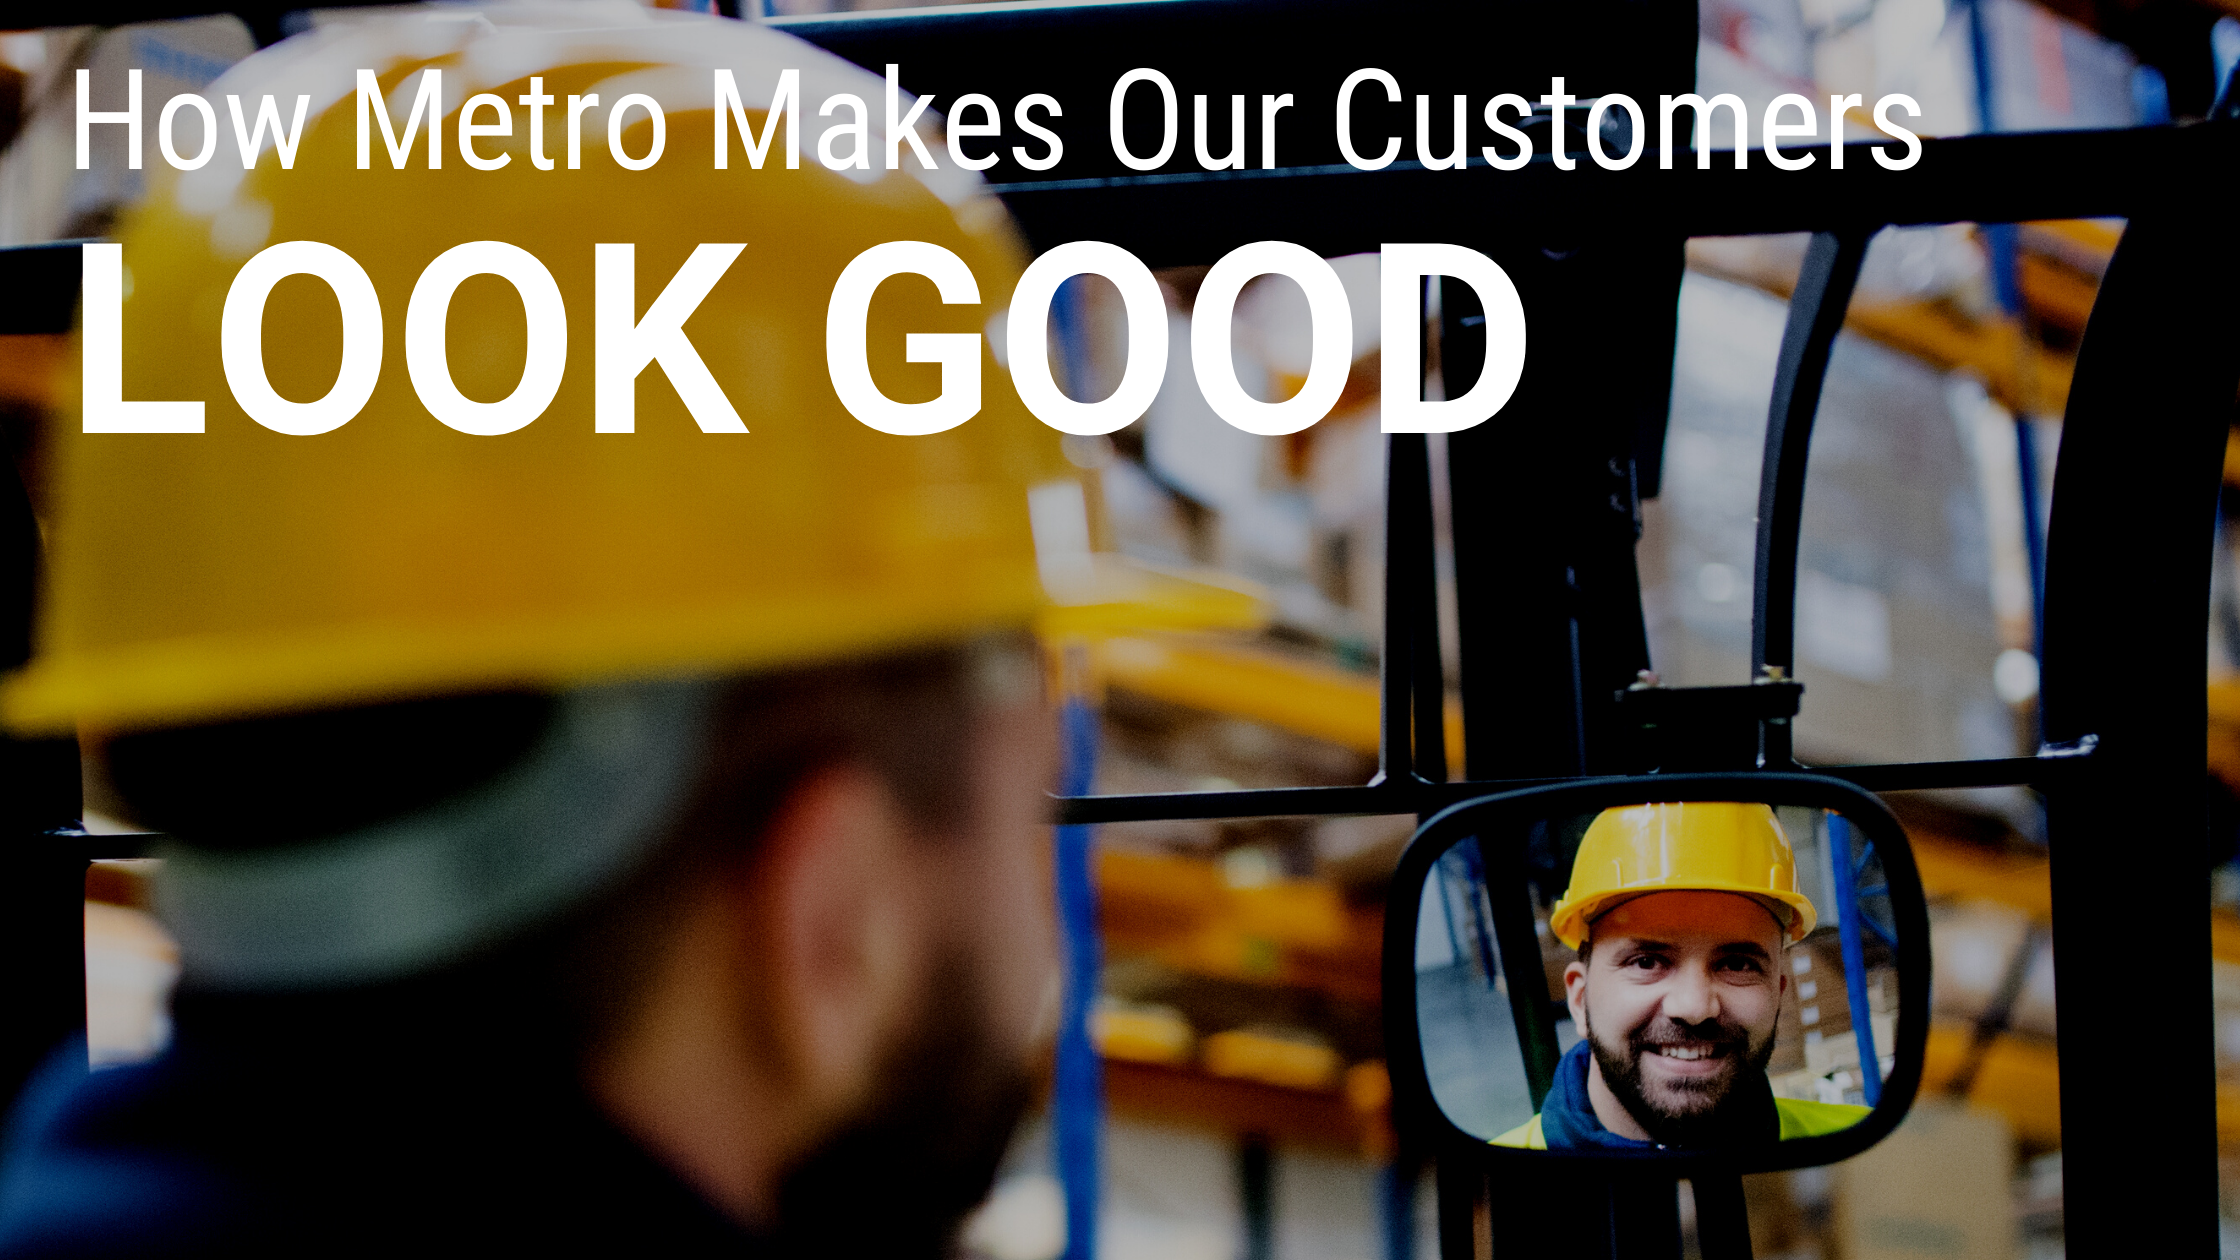 How Metro Makes Our Customers Look Good